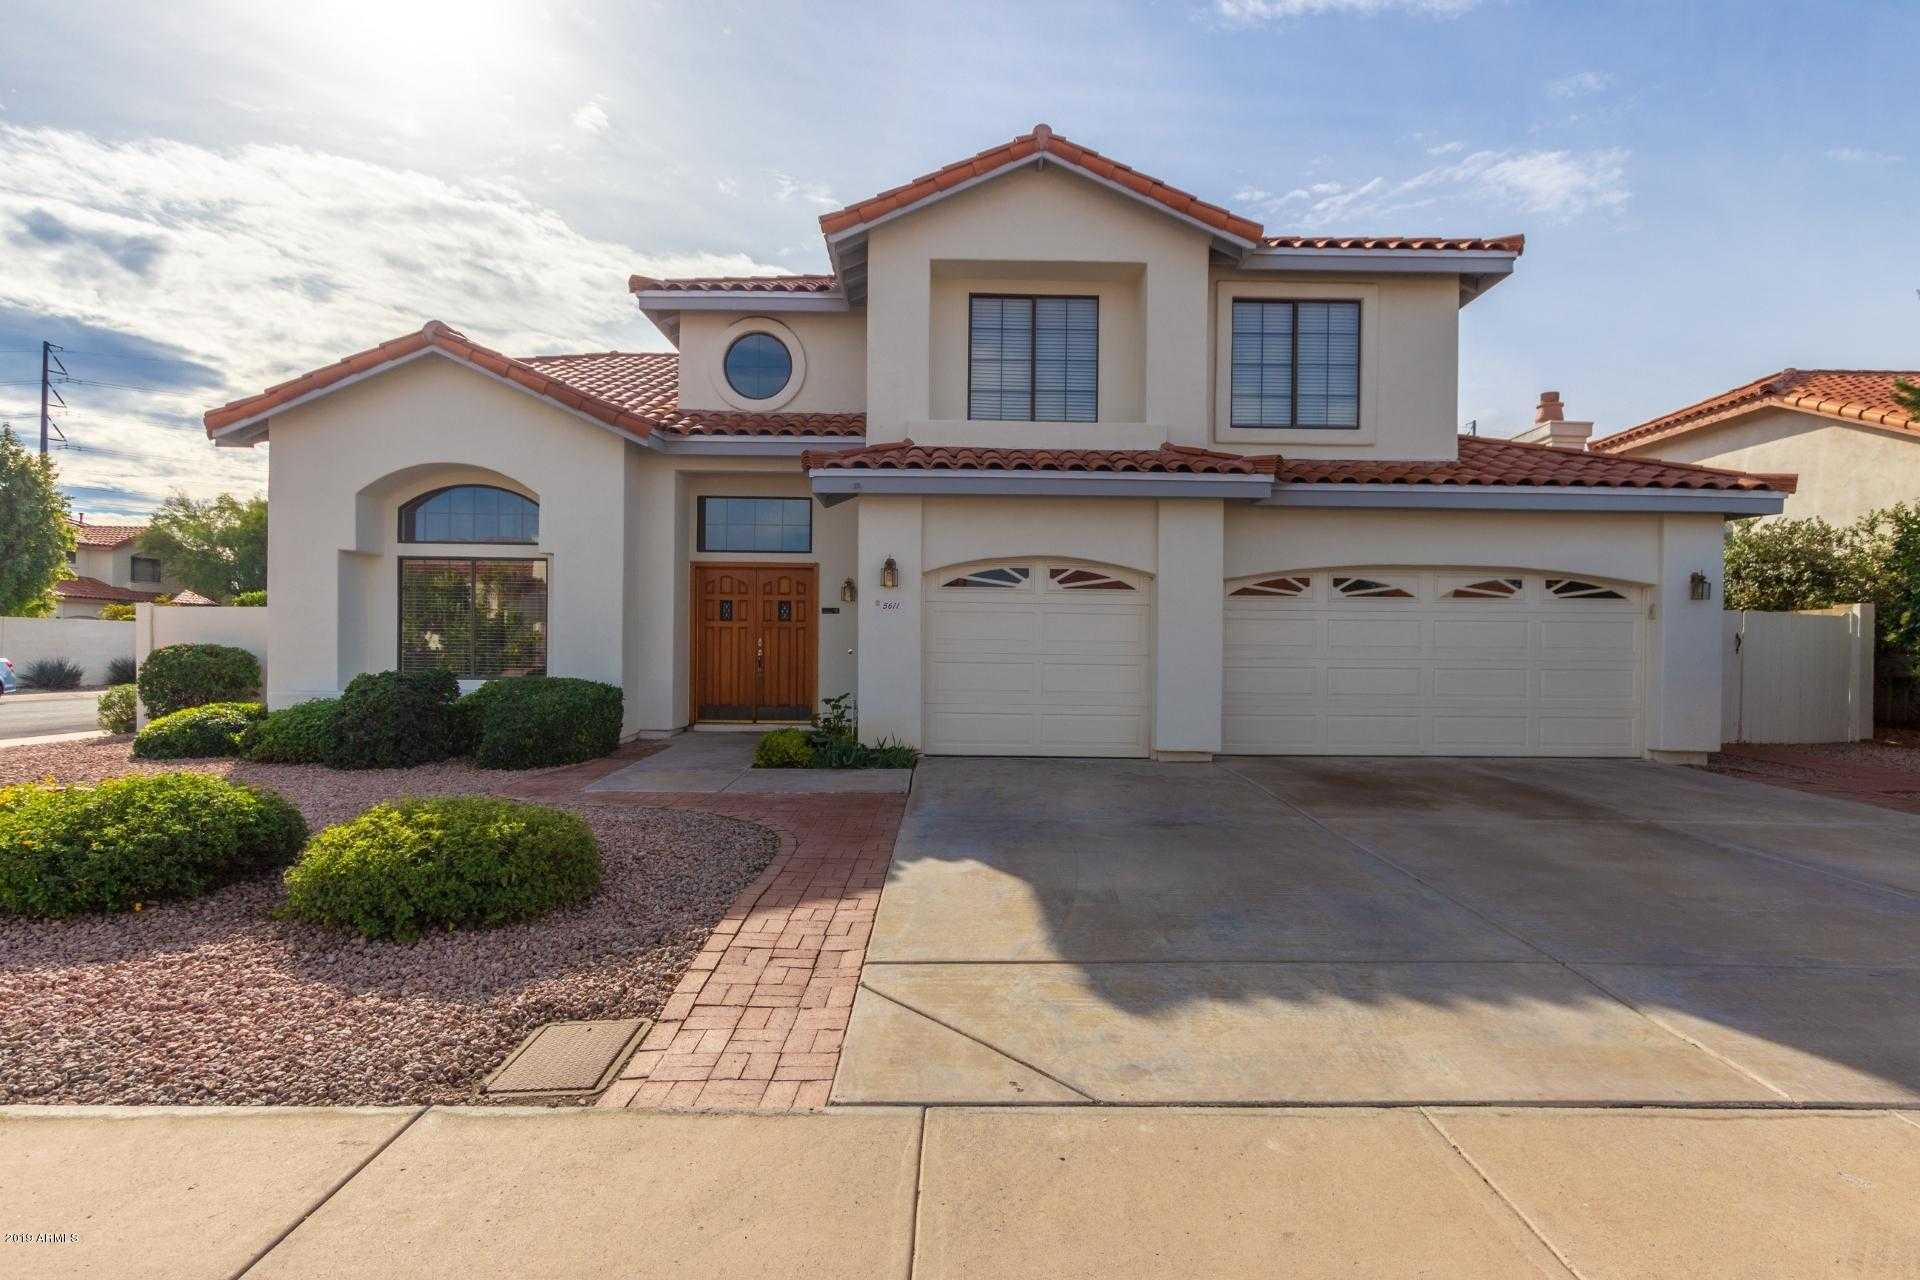 $359,900 - 5Br/3Ba - Home for Sale in Mission Groves 2 At Marshall Ranch, Glendale